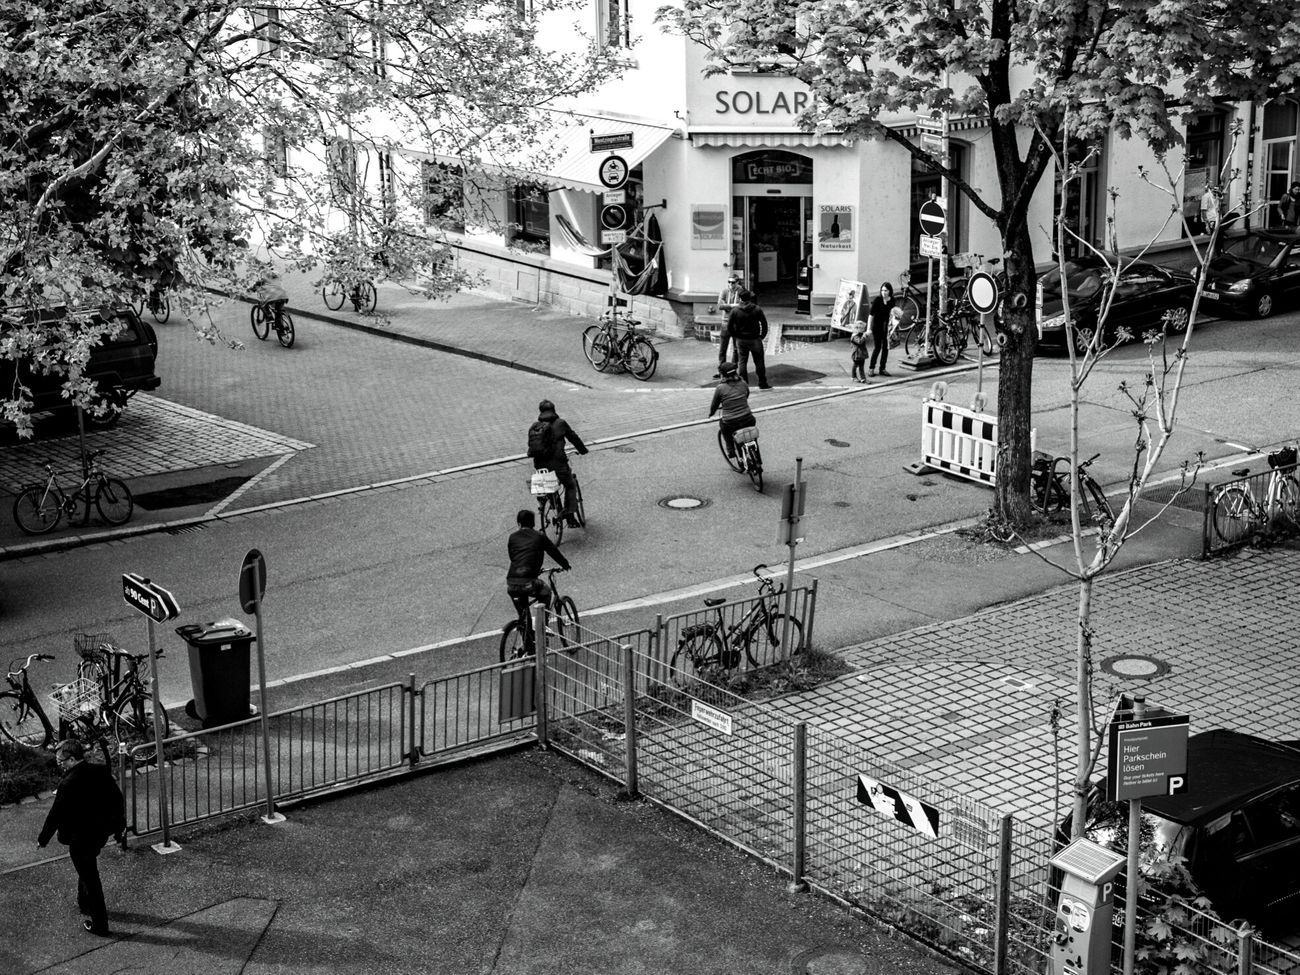 Von Fahrrädern umzingelt ... CyclingUnites The Shop Around The Corner Urban Perspectives Black & White Monochrome Photography From My Point Of View Street Photography The Devil's In The Detail Better Look Twice Streetphoto_bw Live Love Shop Black And White People Are People Urban Exploration Hanging Out Urban Photography Fresh 3 People Watching Bycicles Urban Lifestyle The Way Forward Showcase June Urban Landscape Taking Photos in Freiburg